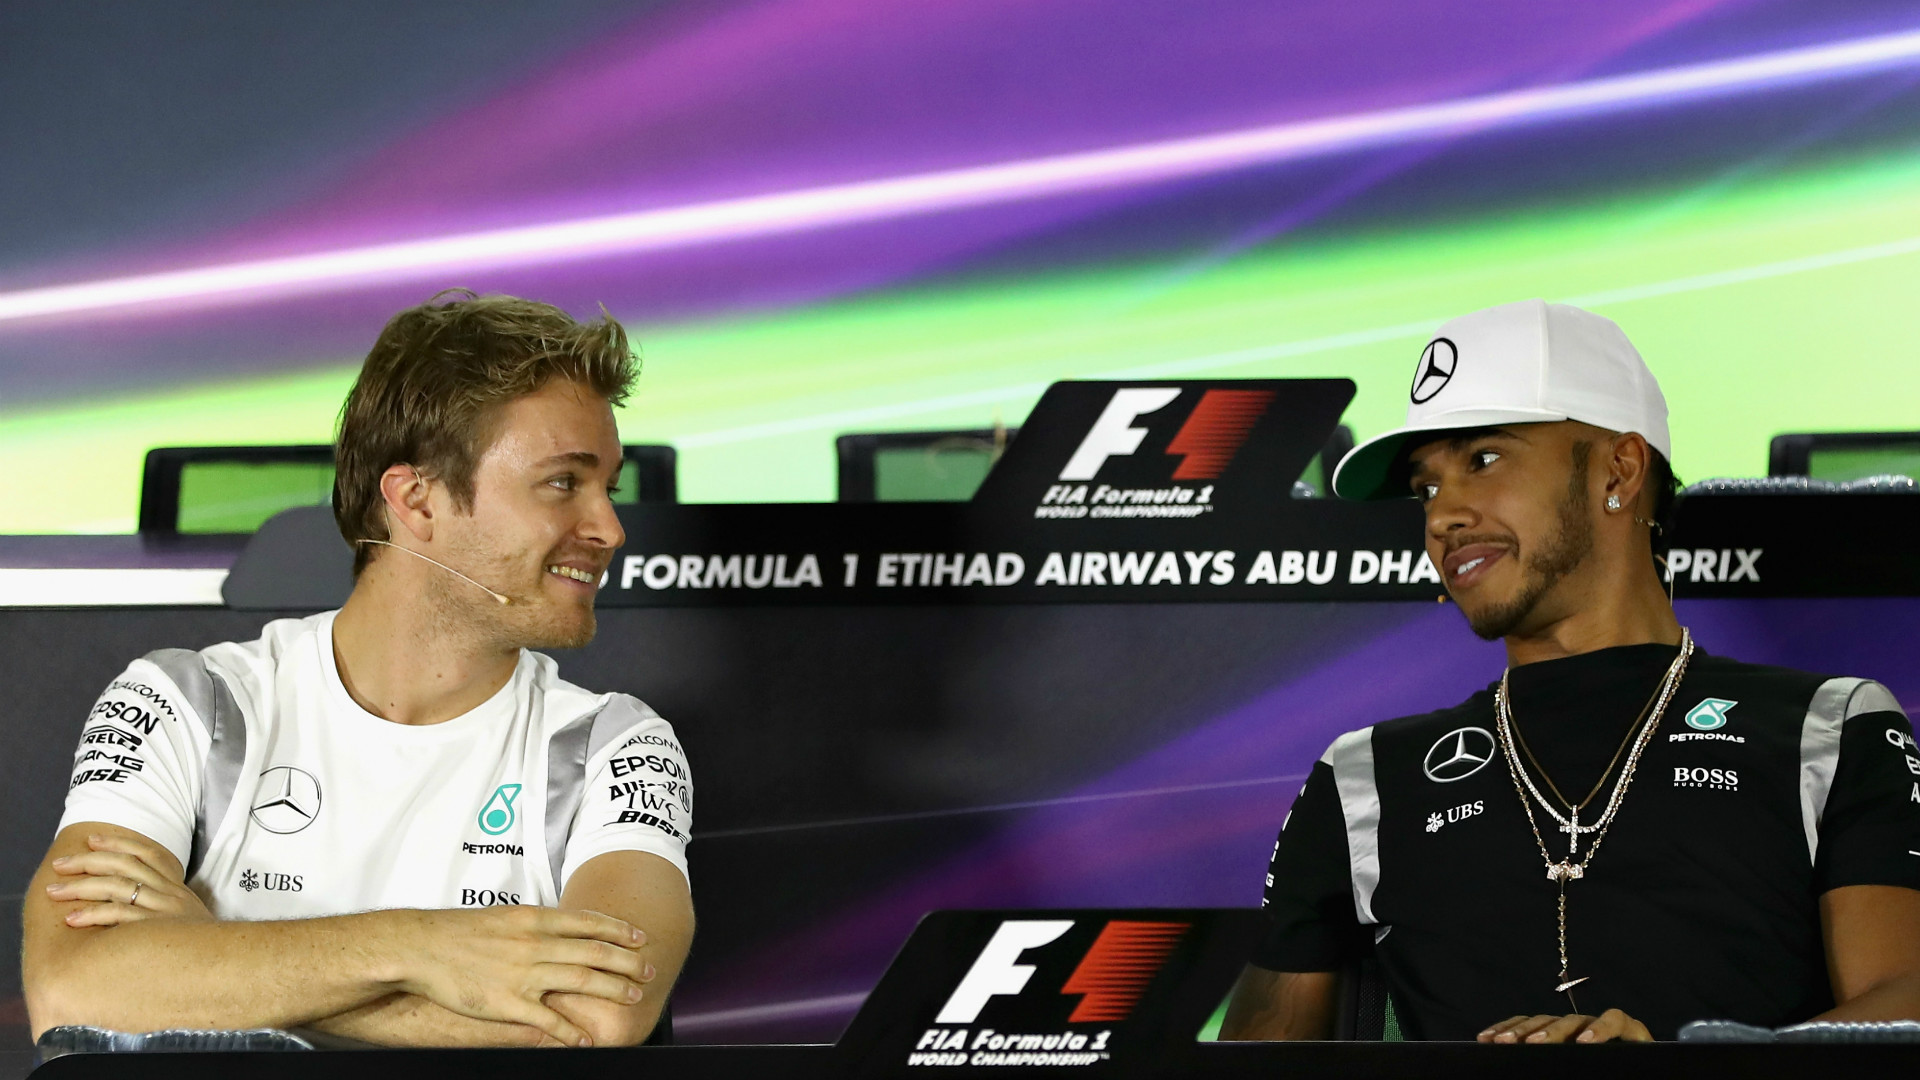 Abu Dhabi F1 preview: Lewis vs Nico